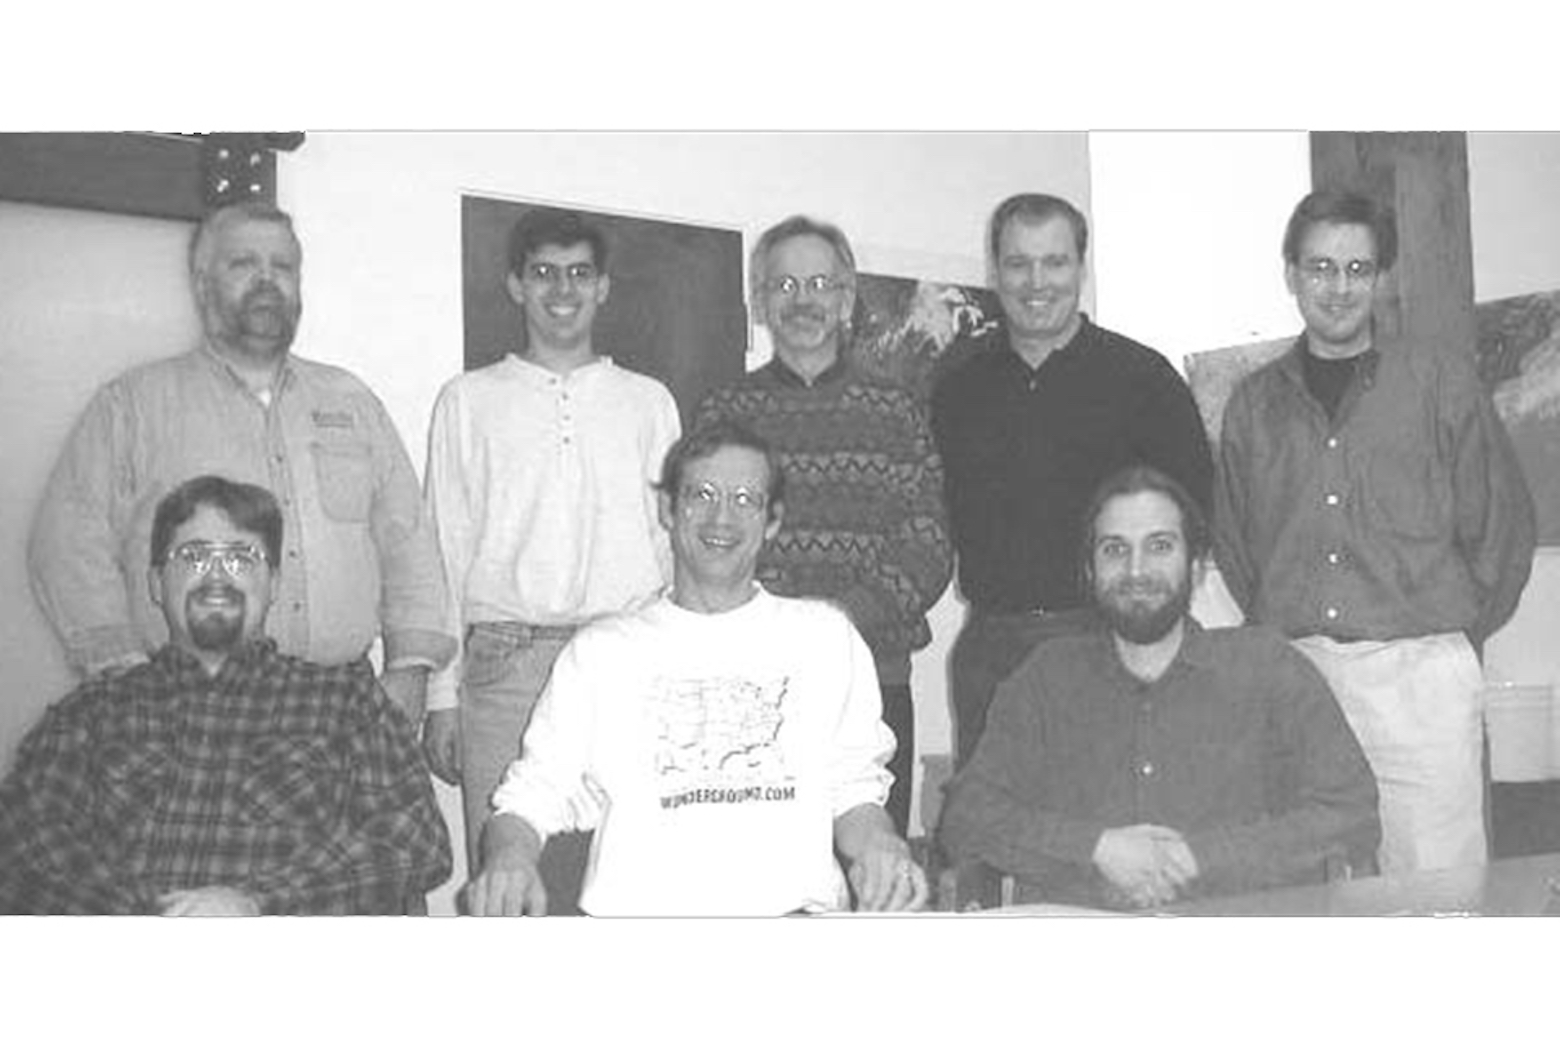 Black and white picture of the 1998 Wunderground employees